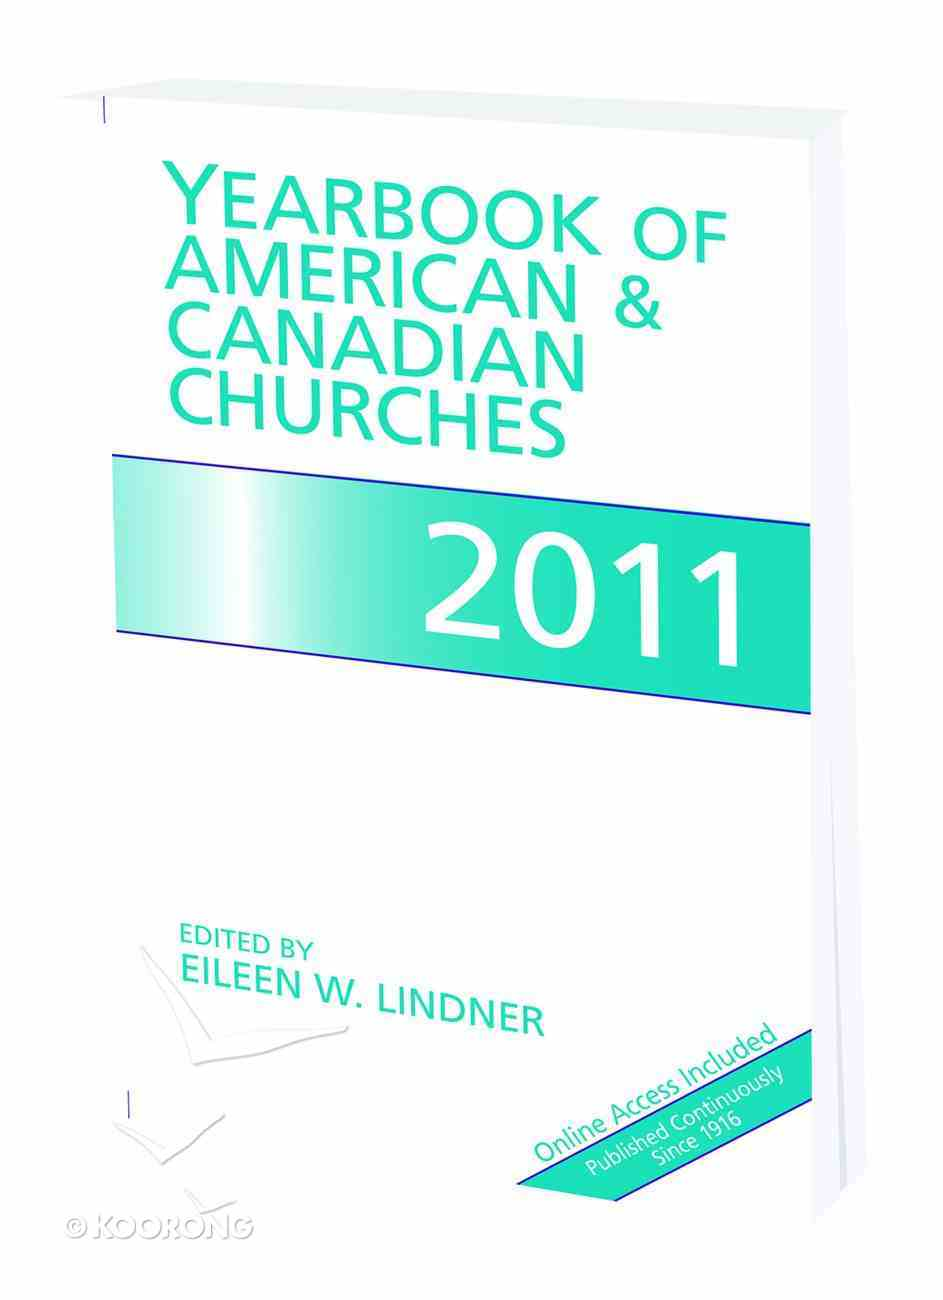 Yearbook of American and Canadian Churches 2011 Paperback